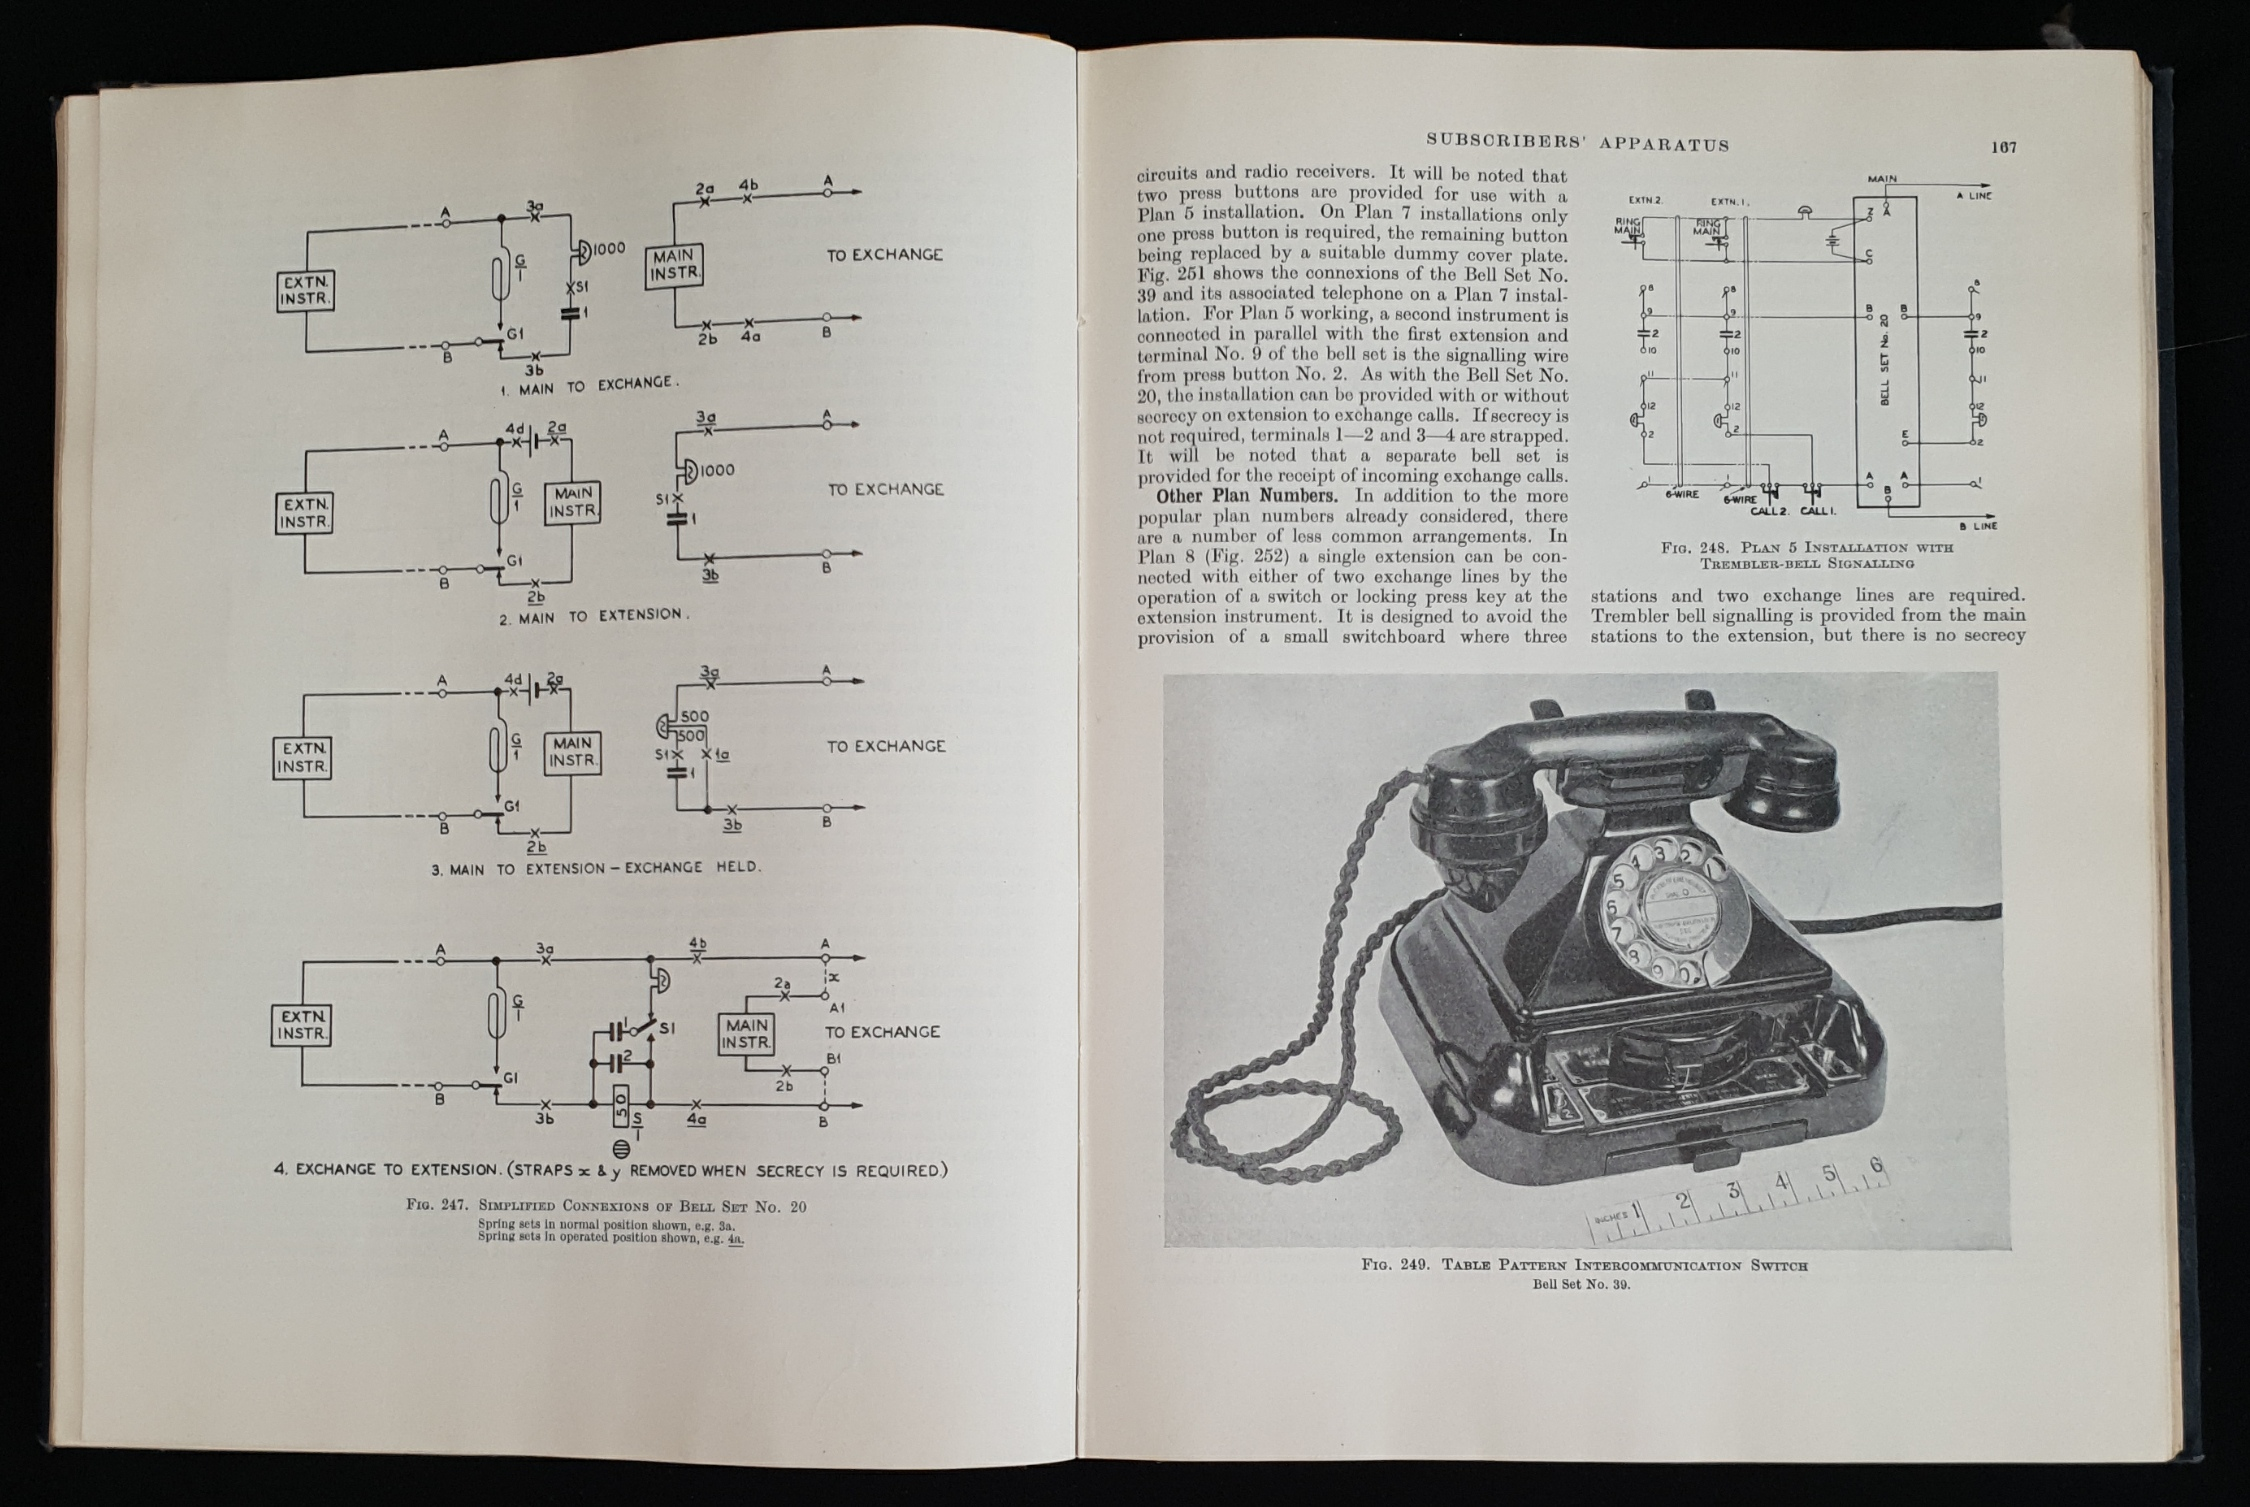 Vintage Books 2 Volumes of Telephony - Image 2 of 3